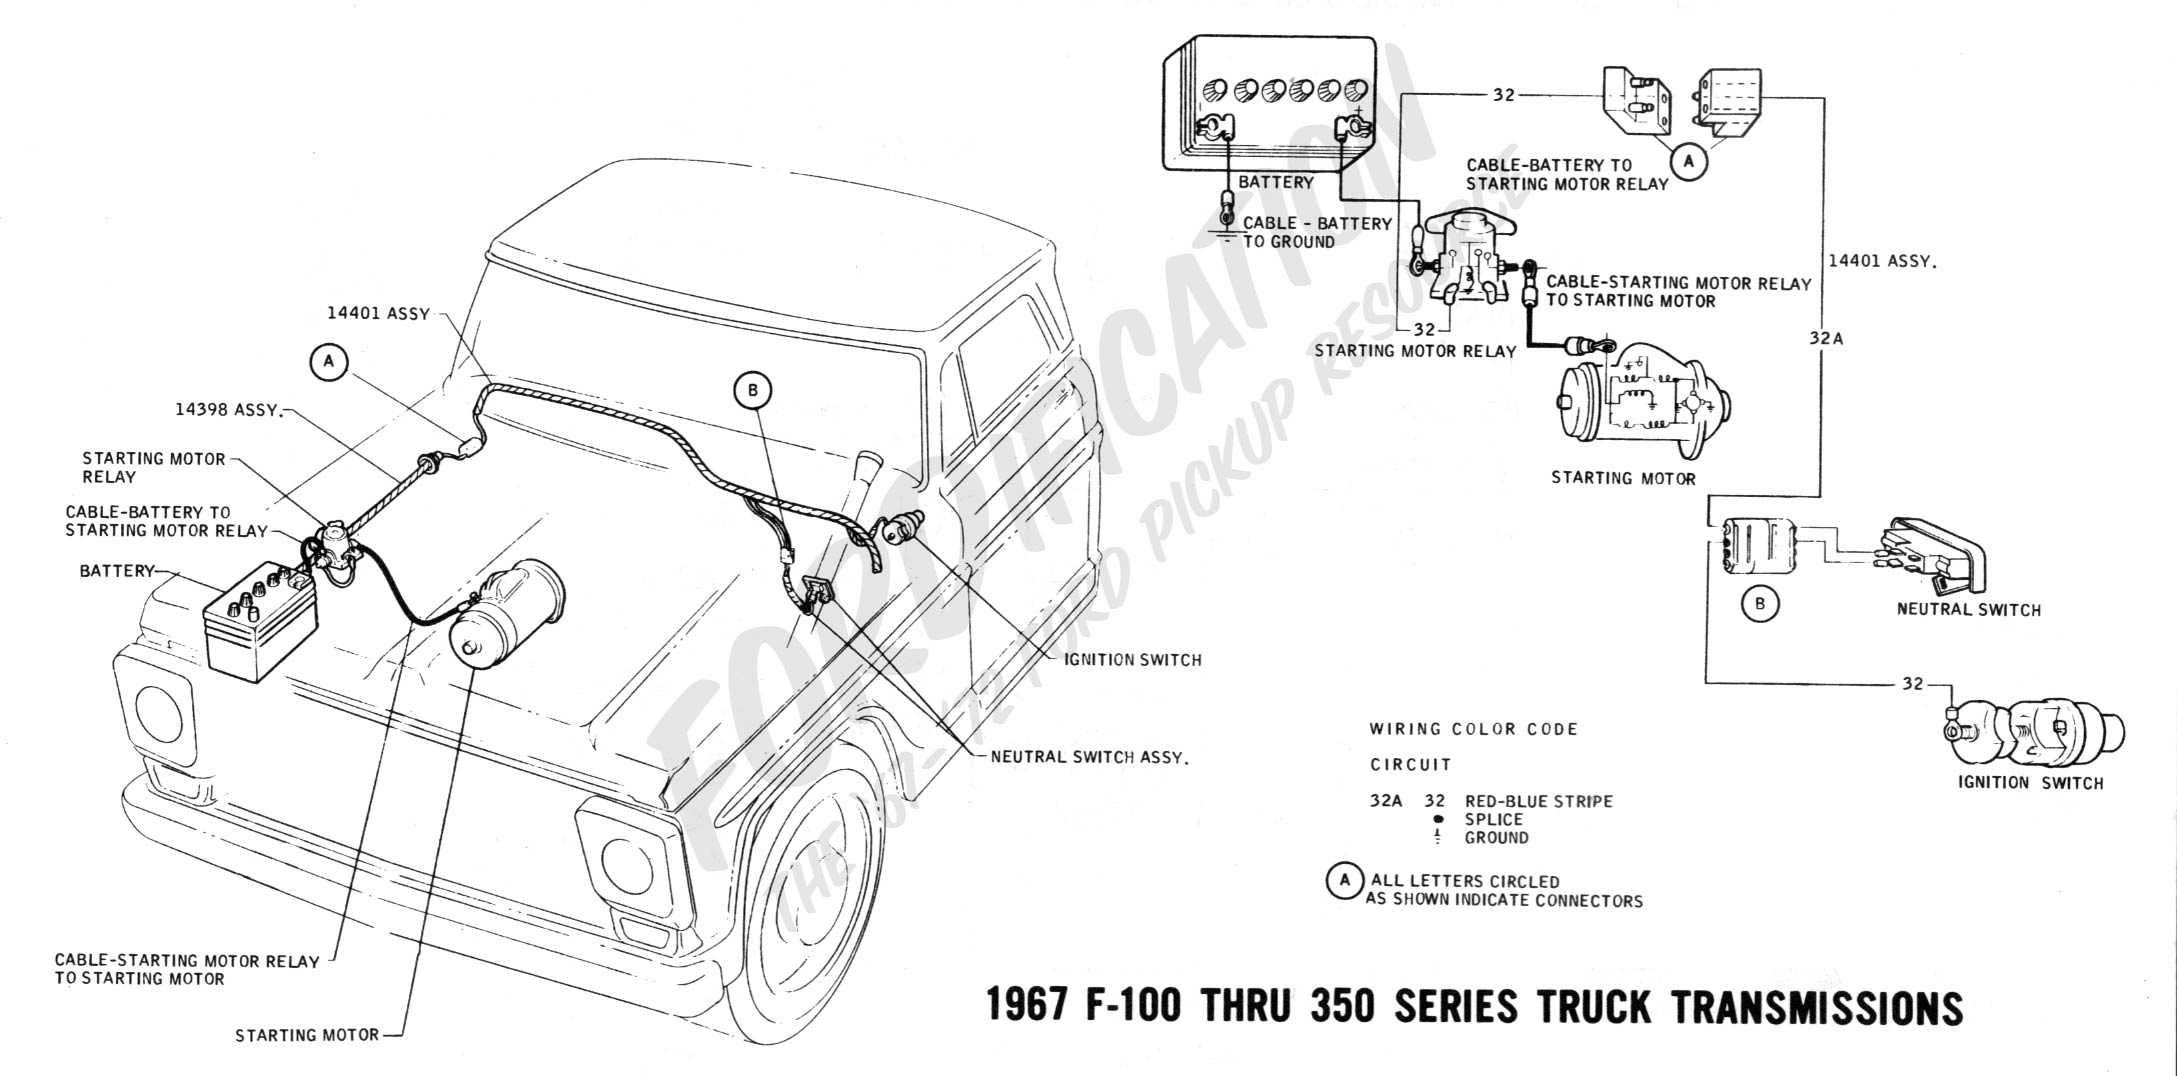 wiring 1967trucktranny ford truck technical drawings and schematics section h wiring 1971 ford f250 wiring diagram at bayanpartner.co